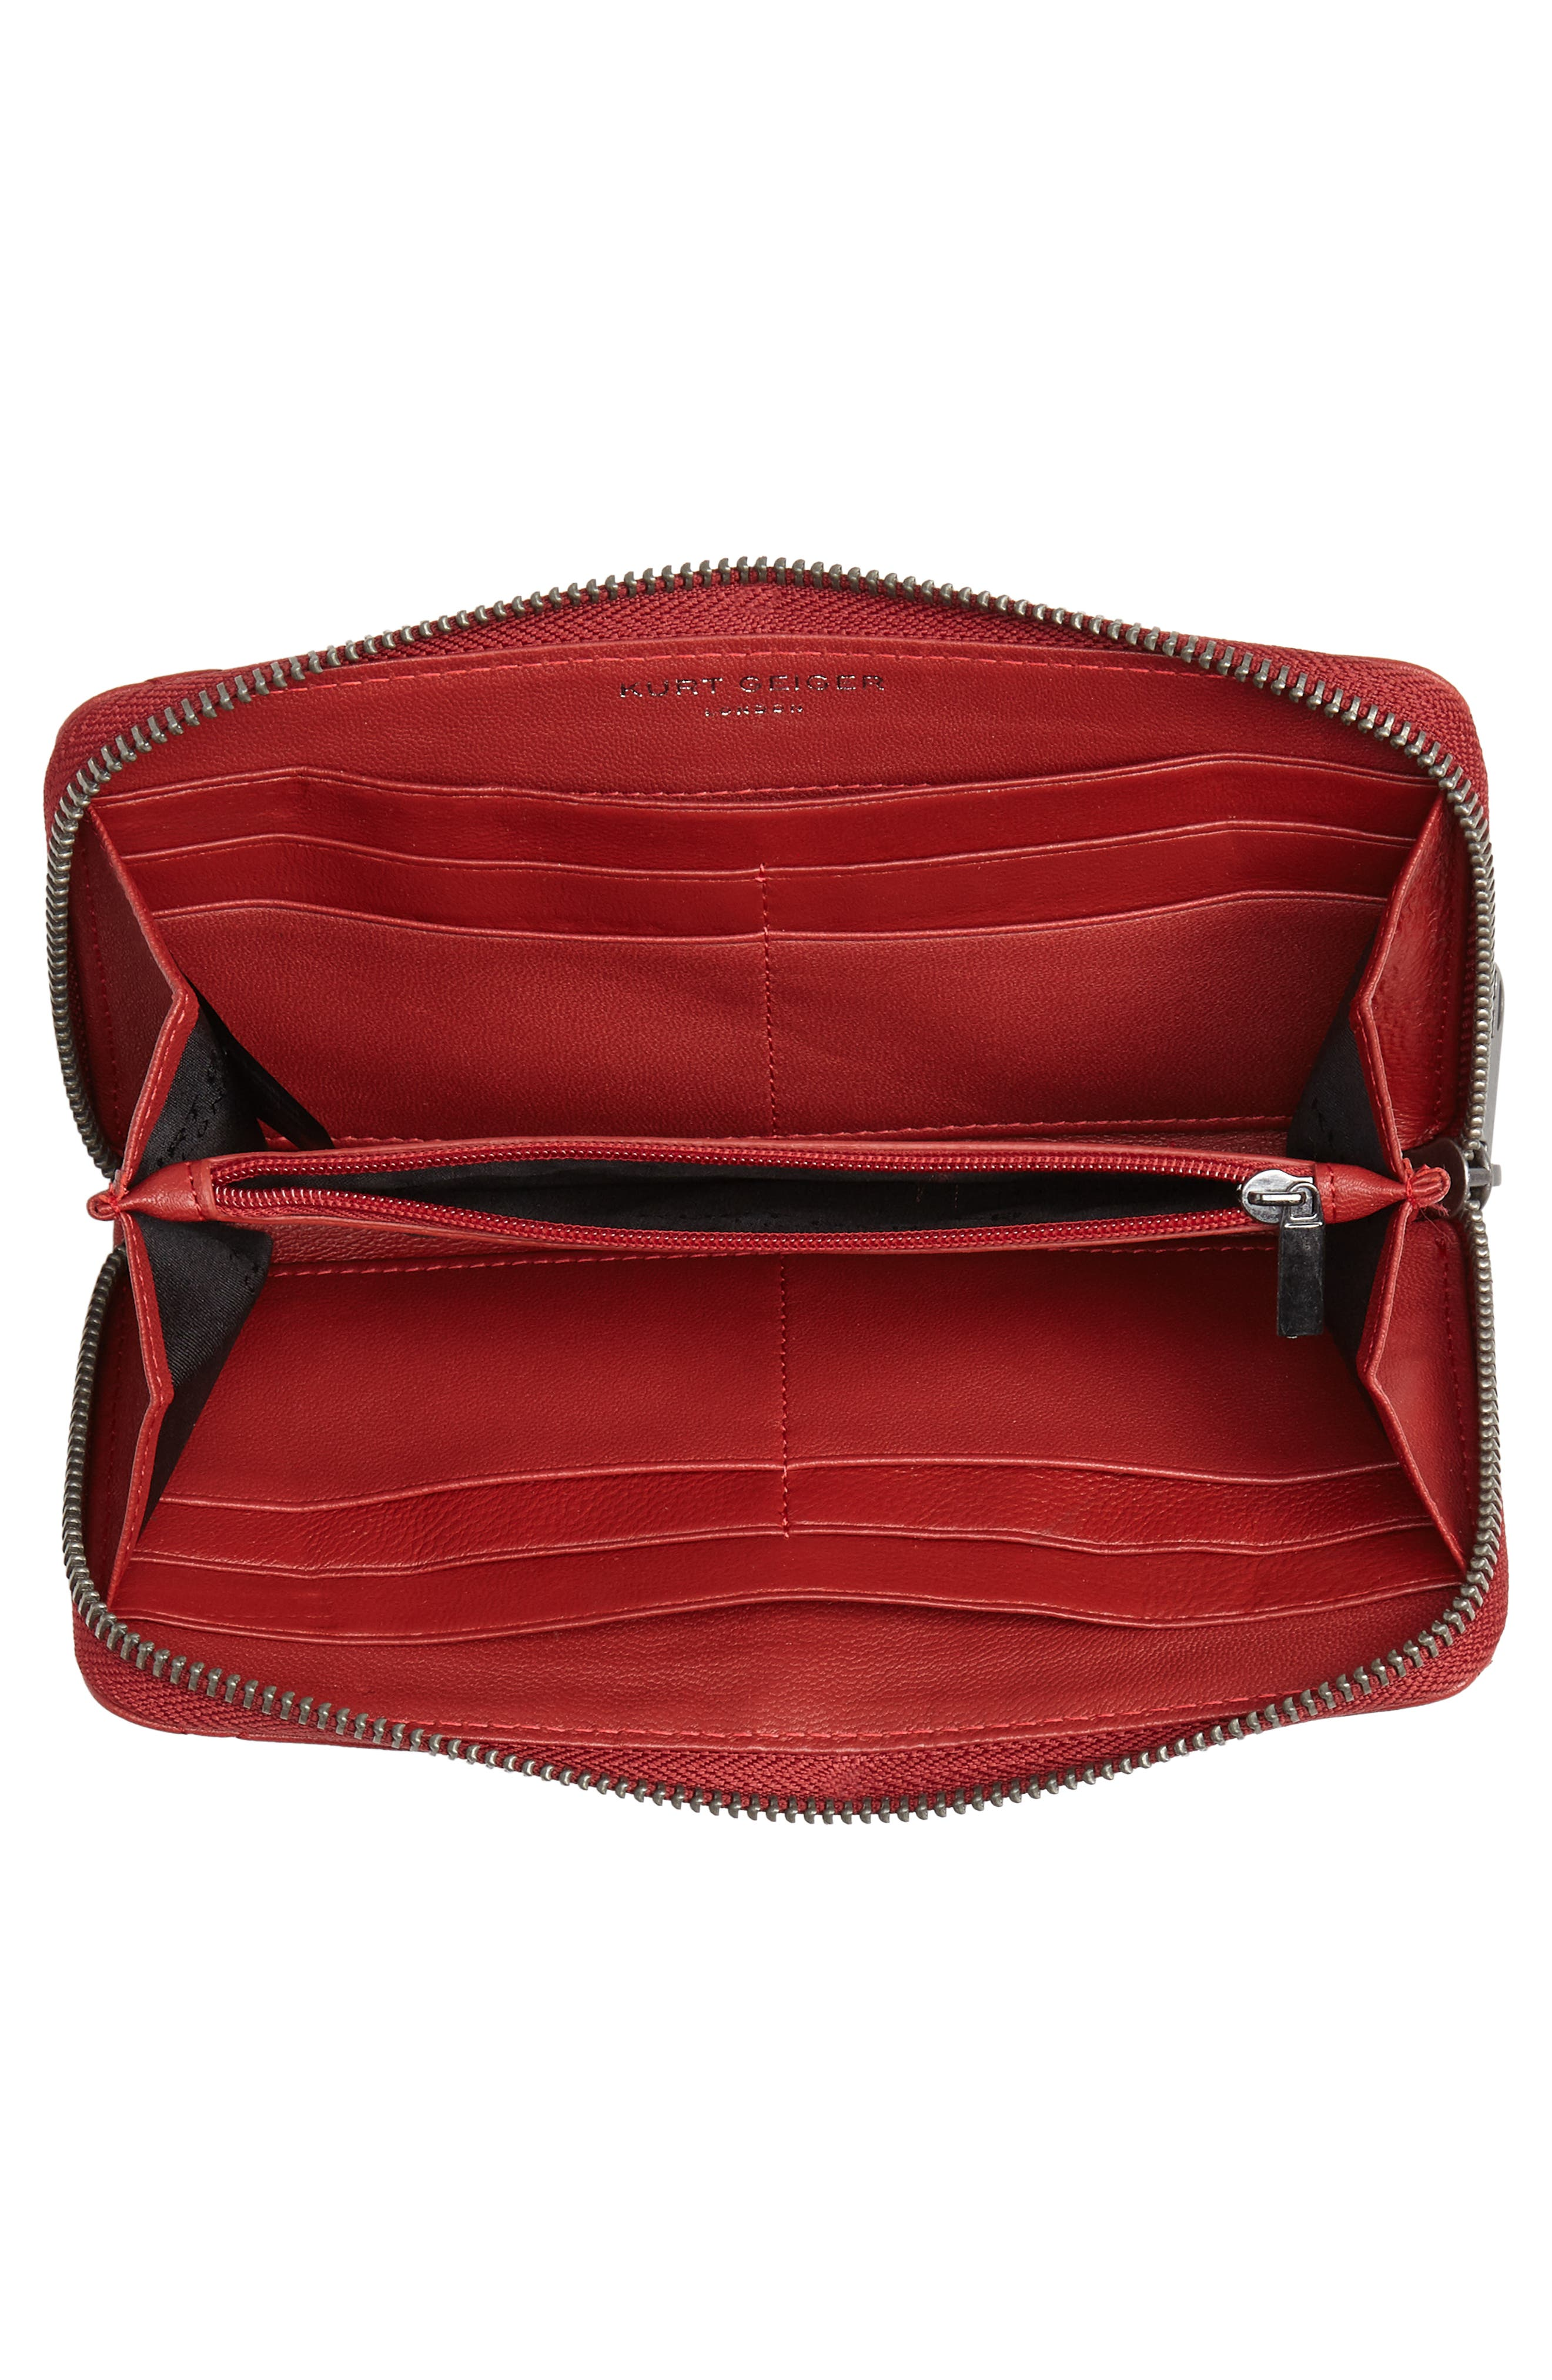 Eagle Leather Zip Around Wallet,                             Alternate thumbnail 4, color,                             RED